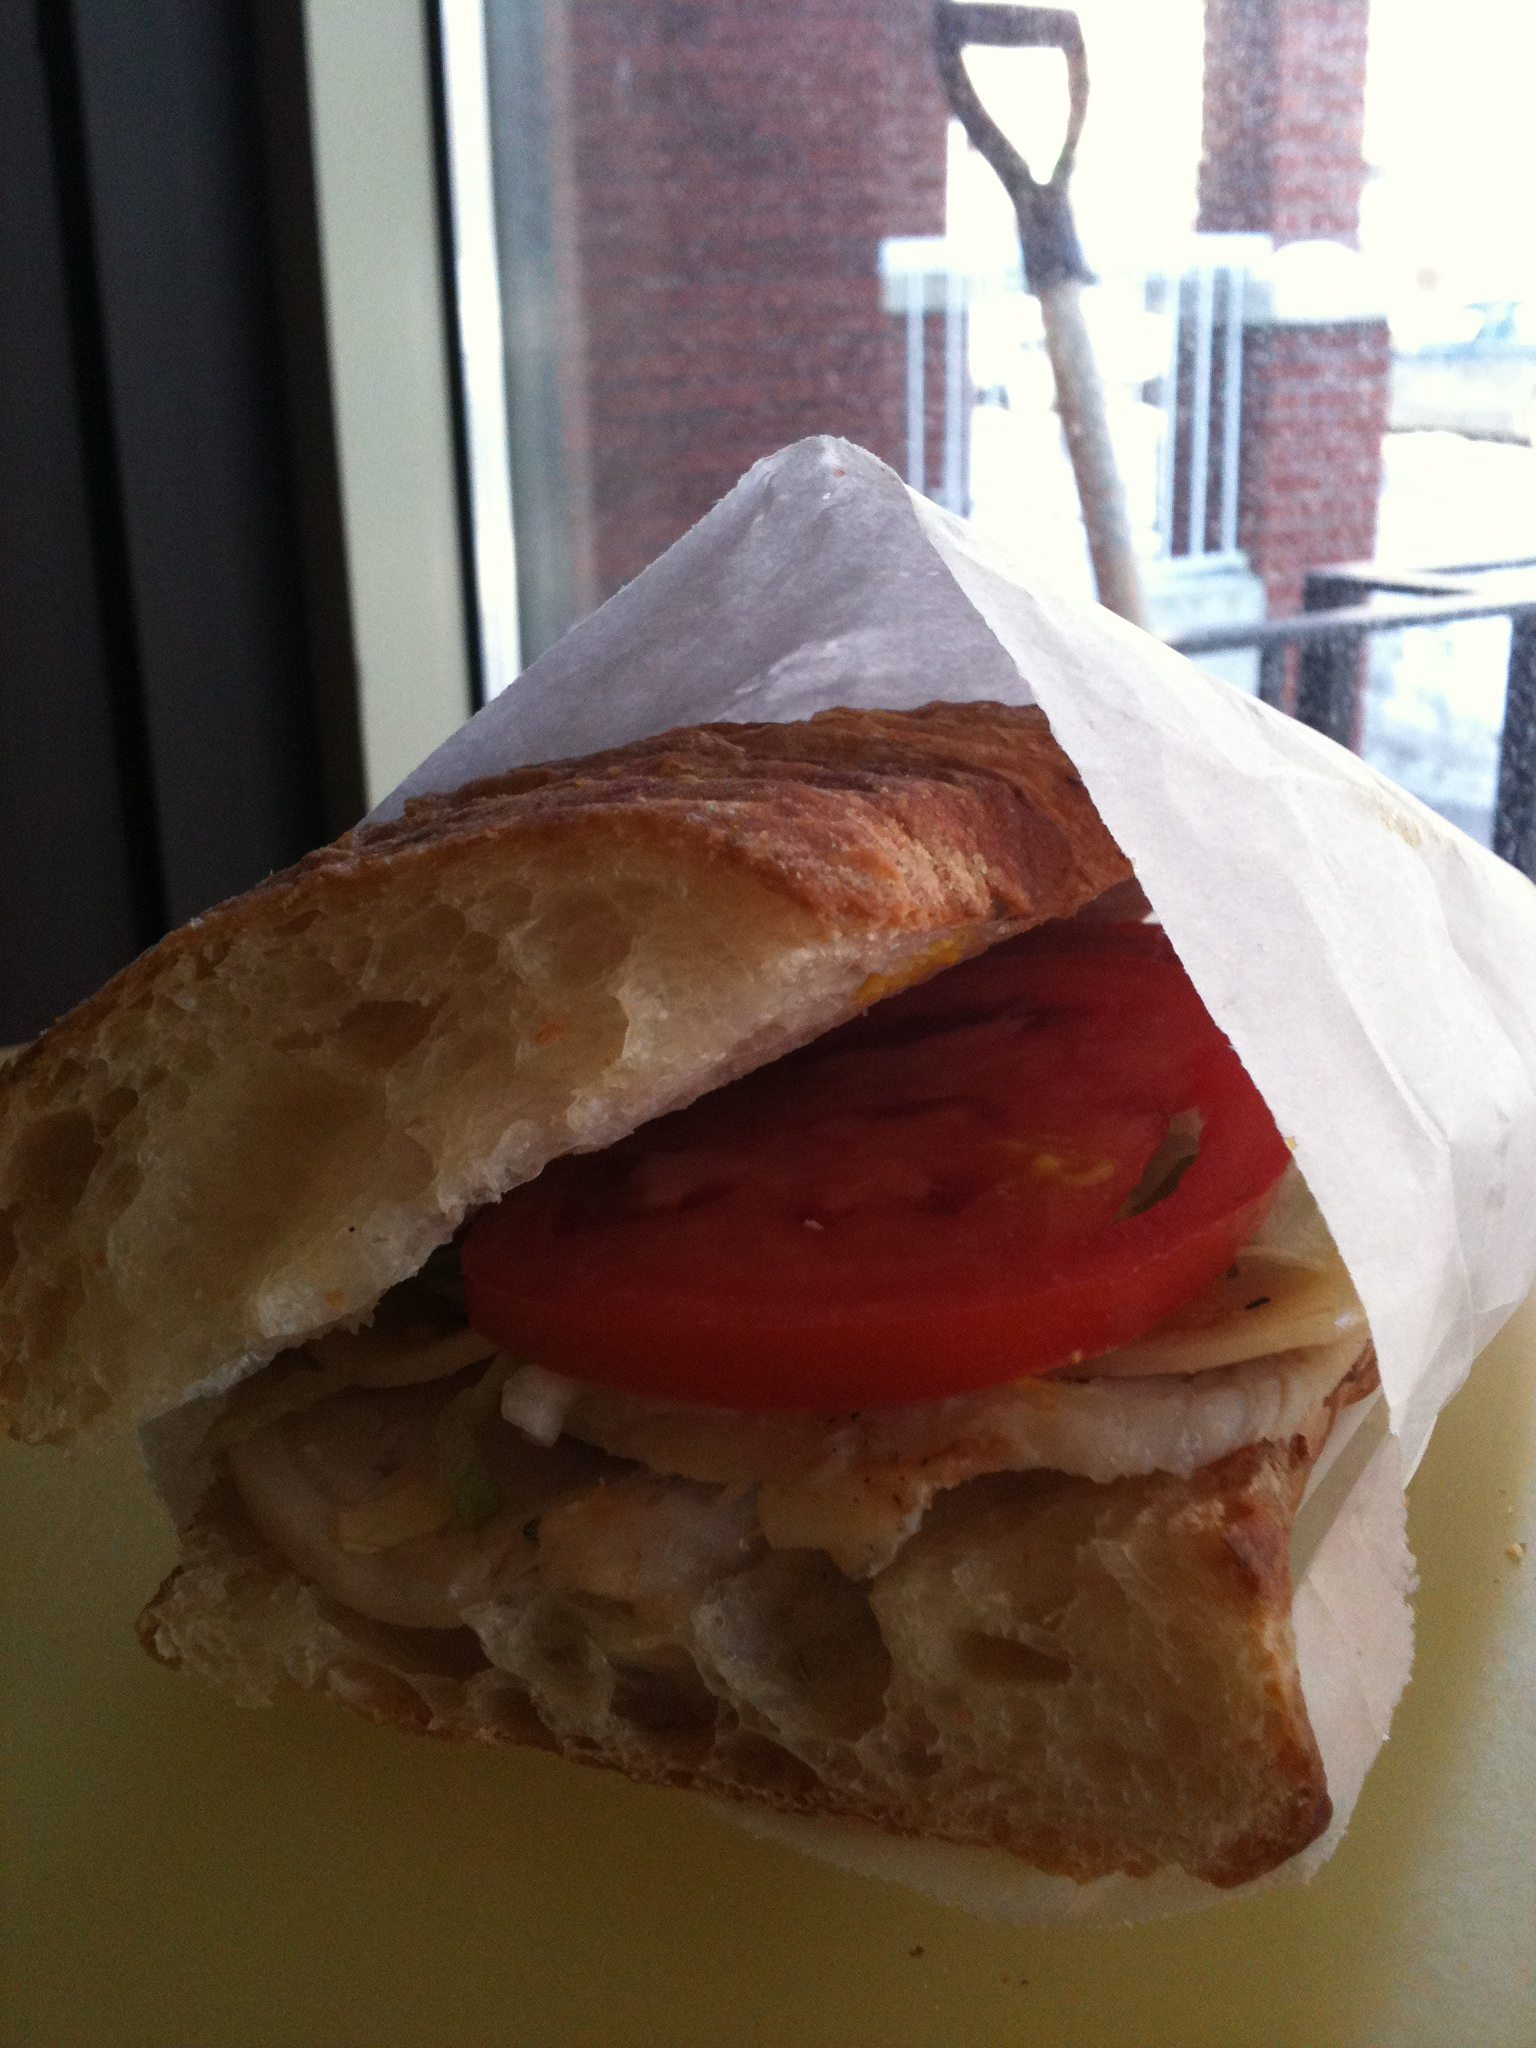 WEEKLY LUNCH PICK: Morning Owl serves up tasty pressed sandwiches — and a wicked java jolt